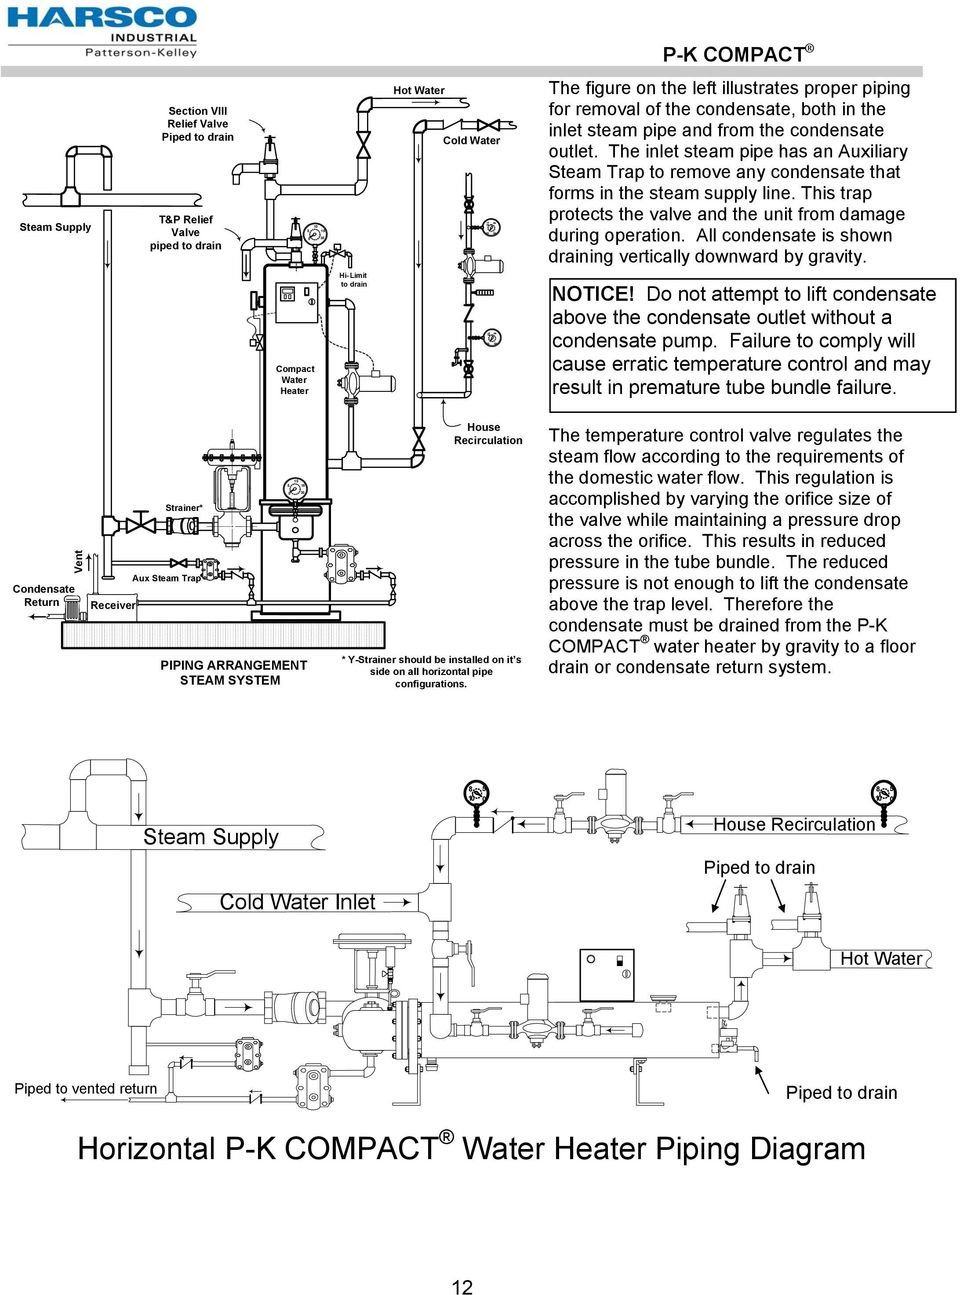 ... Water Heater Piping Diagram 12. This trap protects the valve and the  unit from damage during operation. All condensate is